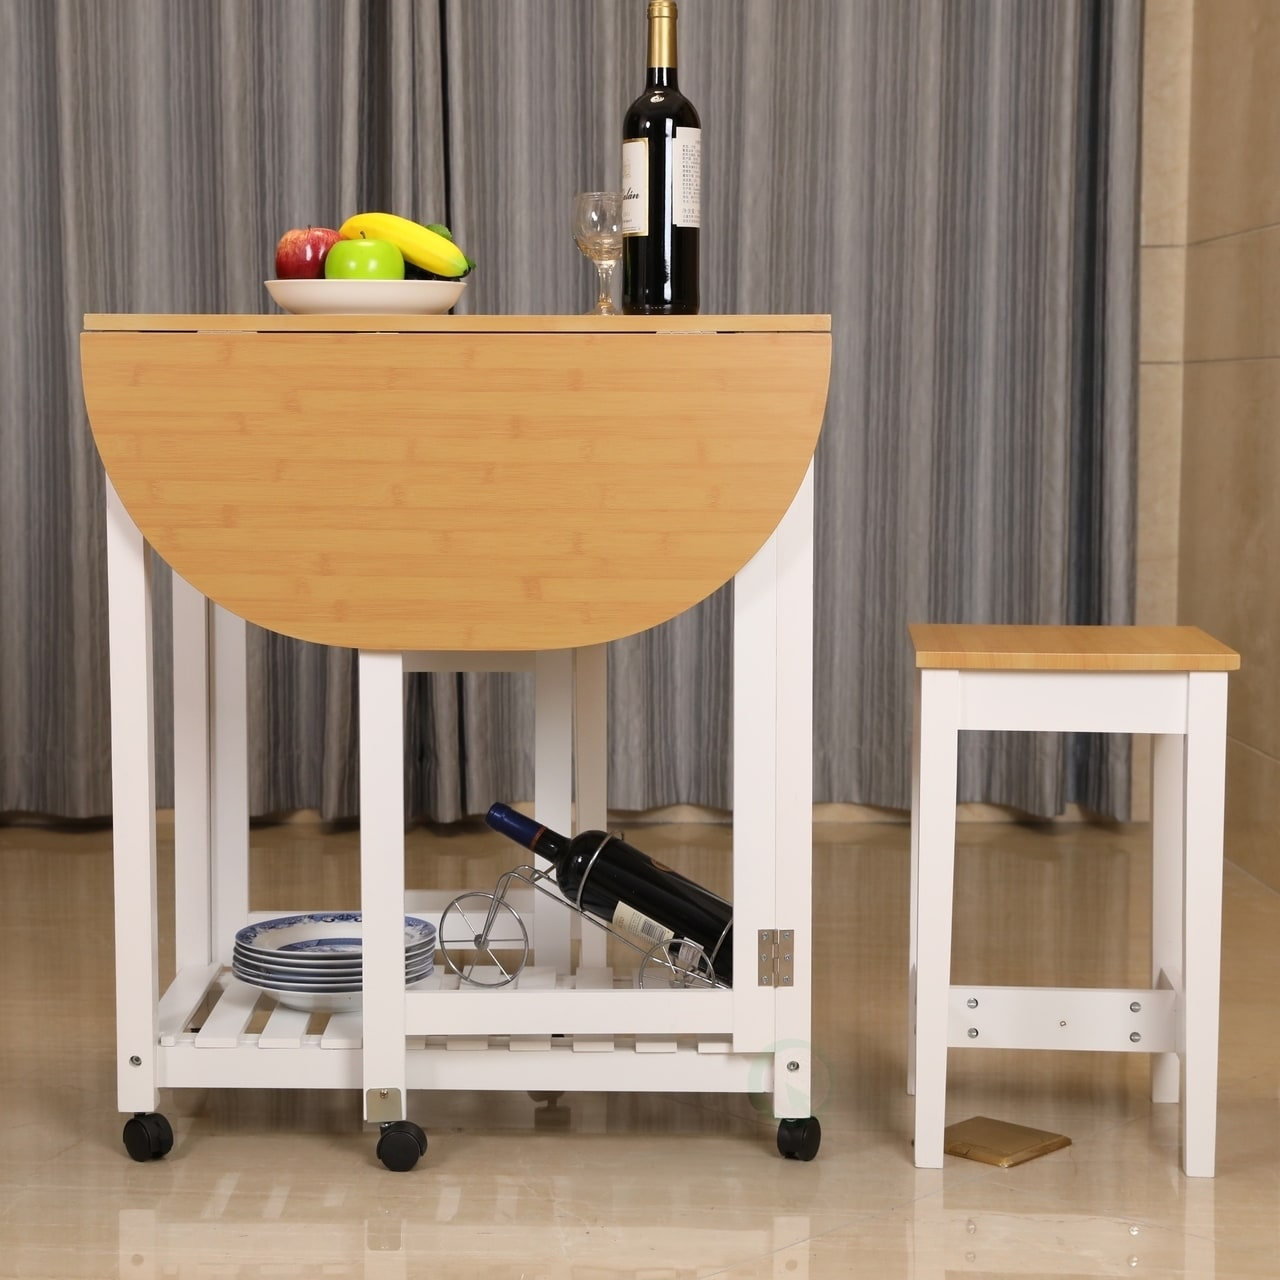 3 Piece Kitchen Island Breakfast Bar Set With Casters Drop Down Table 2 Stools Free Shipping Today 17975287